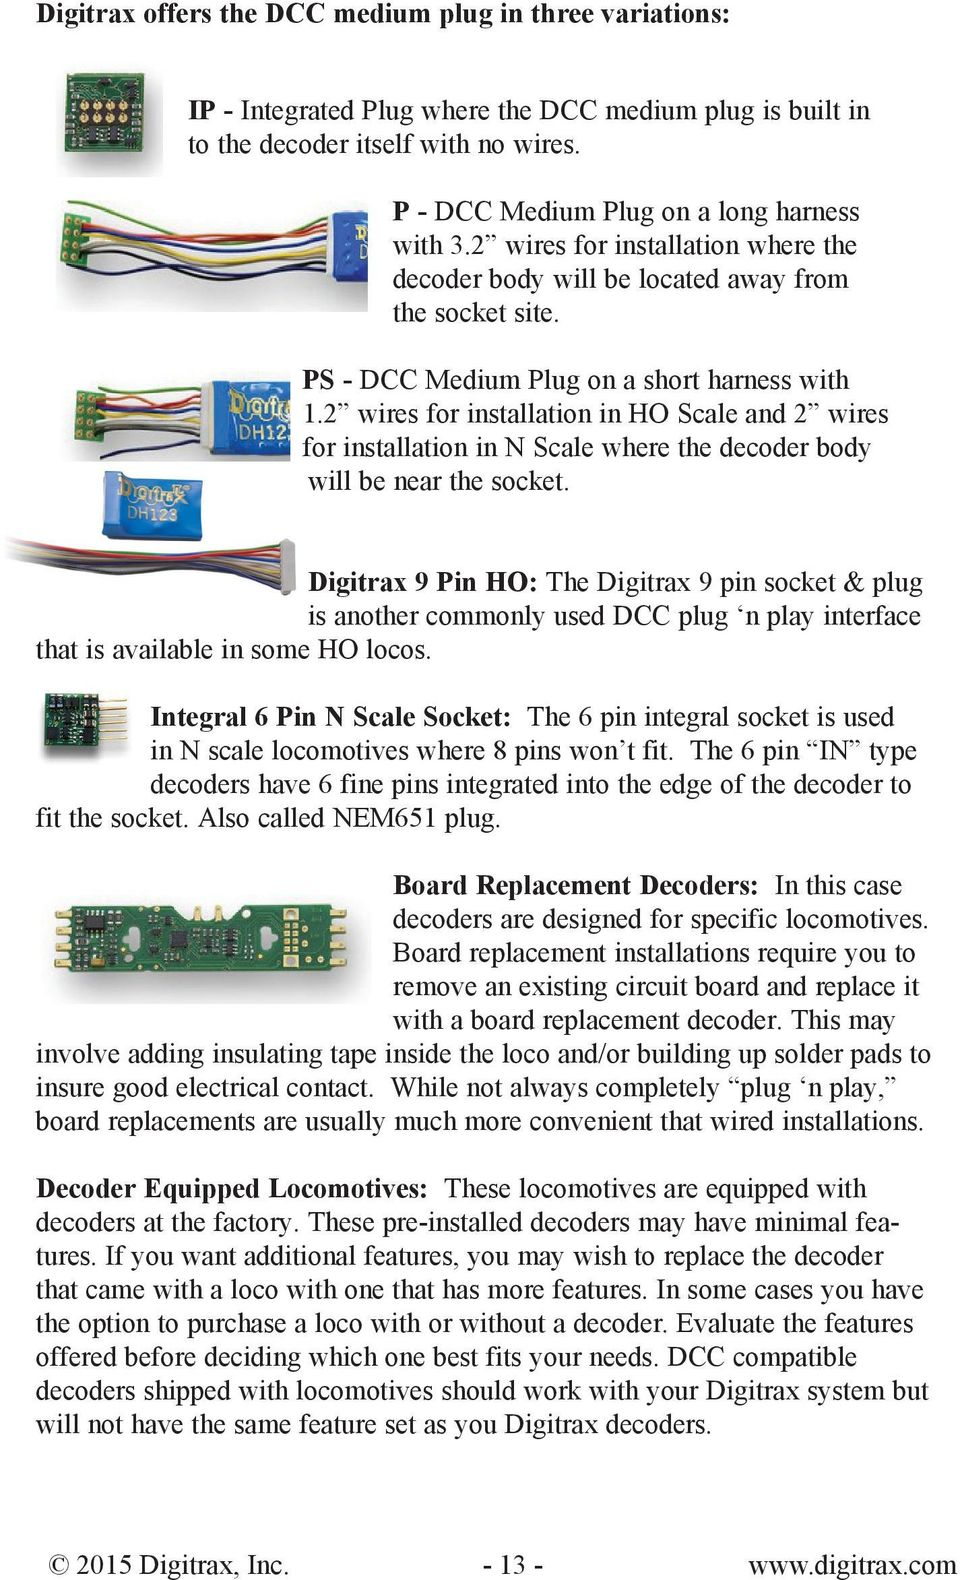 Dcc Wiring Diagrams Additionally N Scale Model Railroad Foam On Dcc